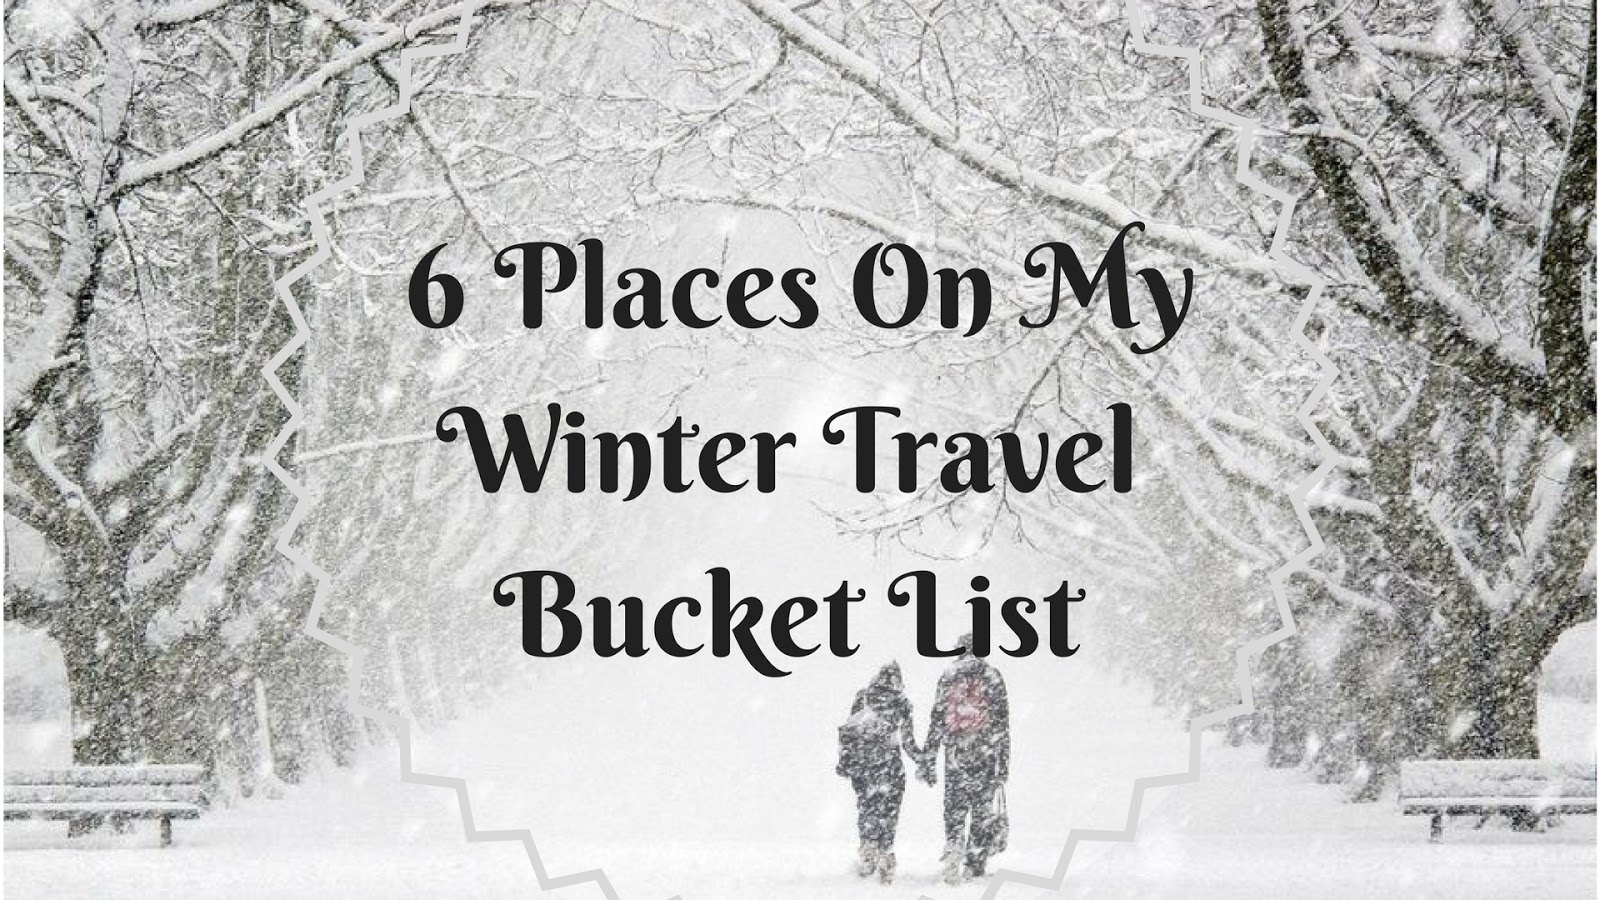 6 Places On My Winter Travel Bucket List